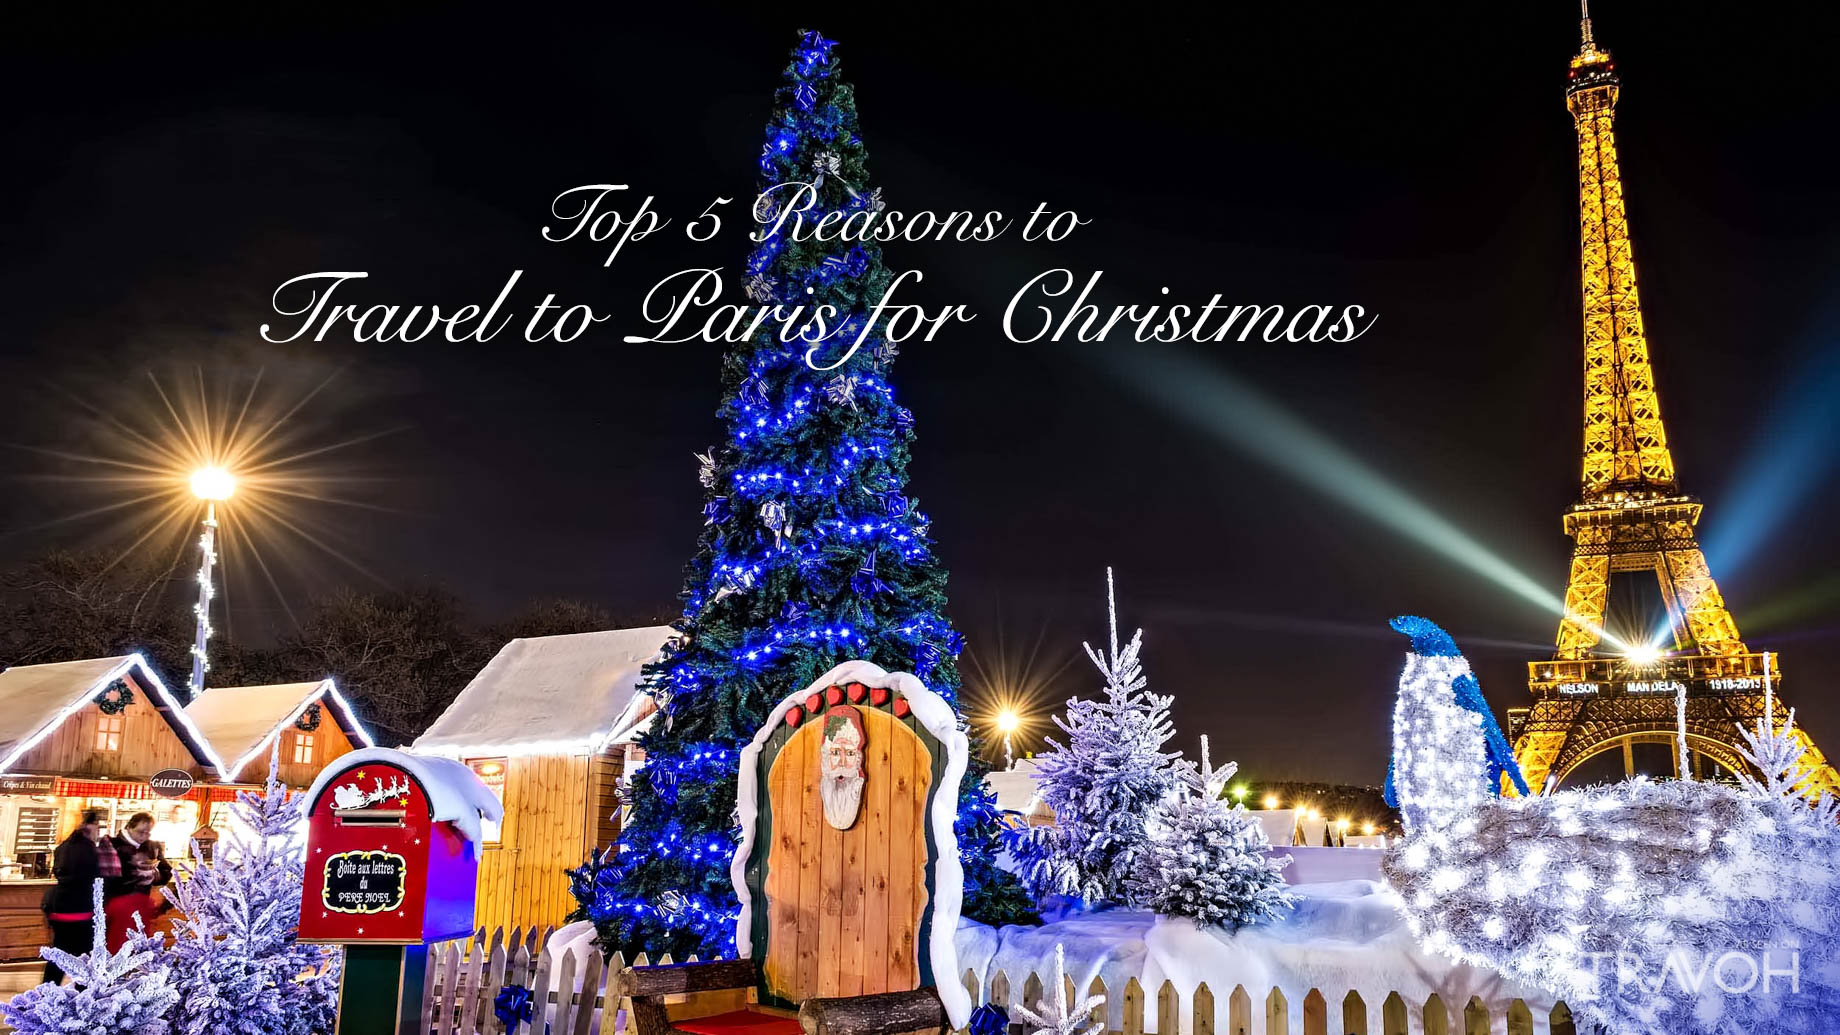 Top 5 Reasons to Travel to Paris for Christmas